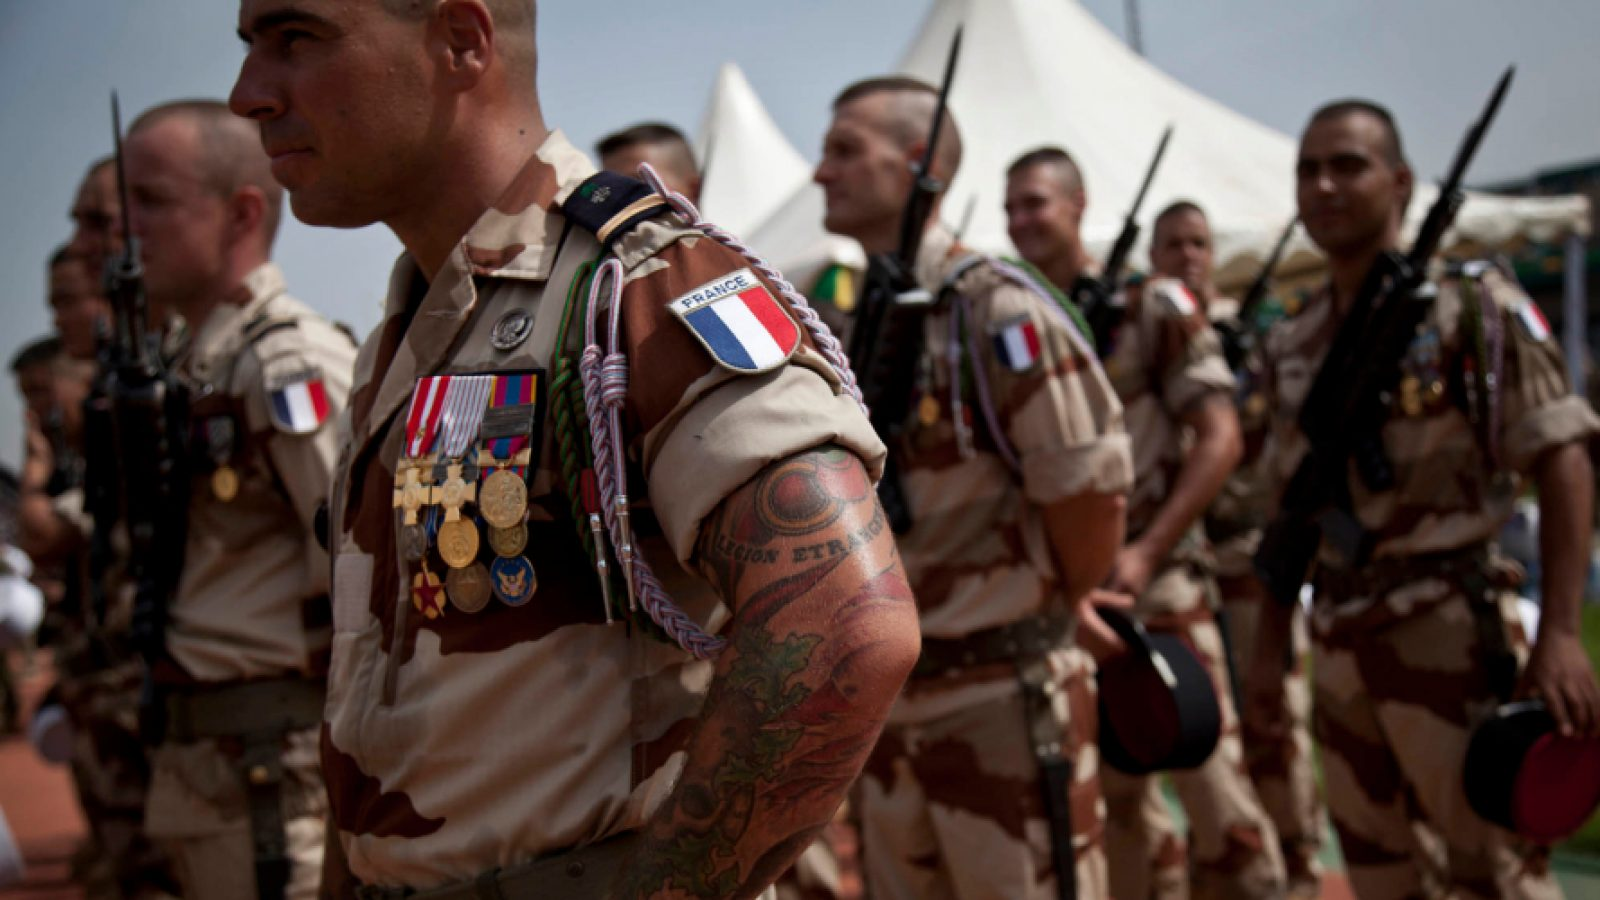 French soldiers attend the inauguration of Ibrahim Boubacar Keita as the president of Mali